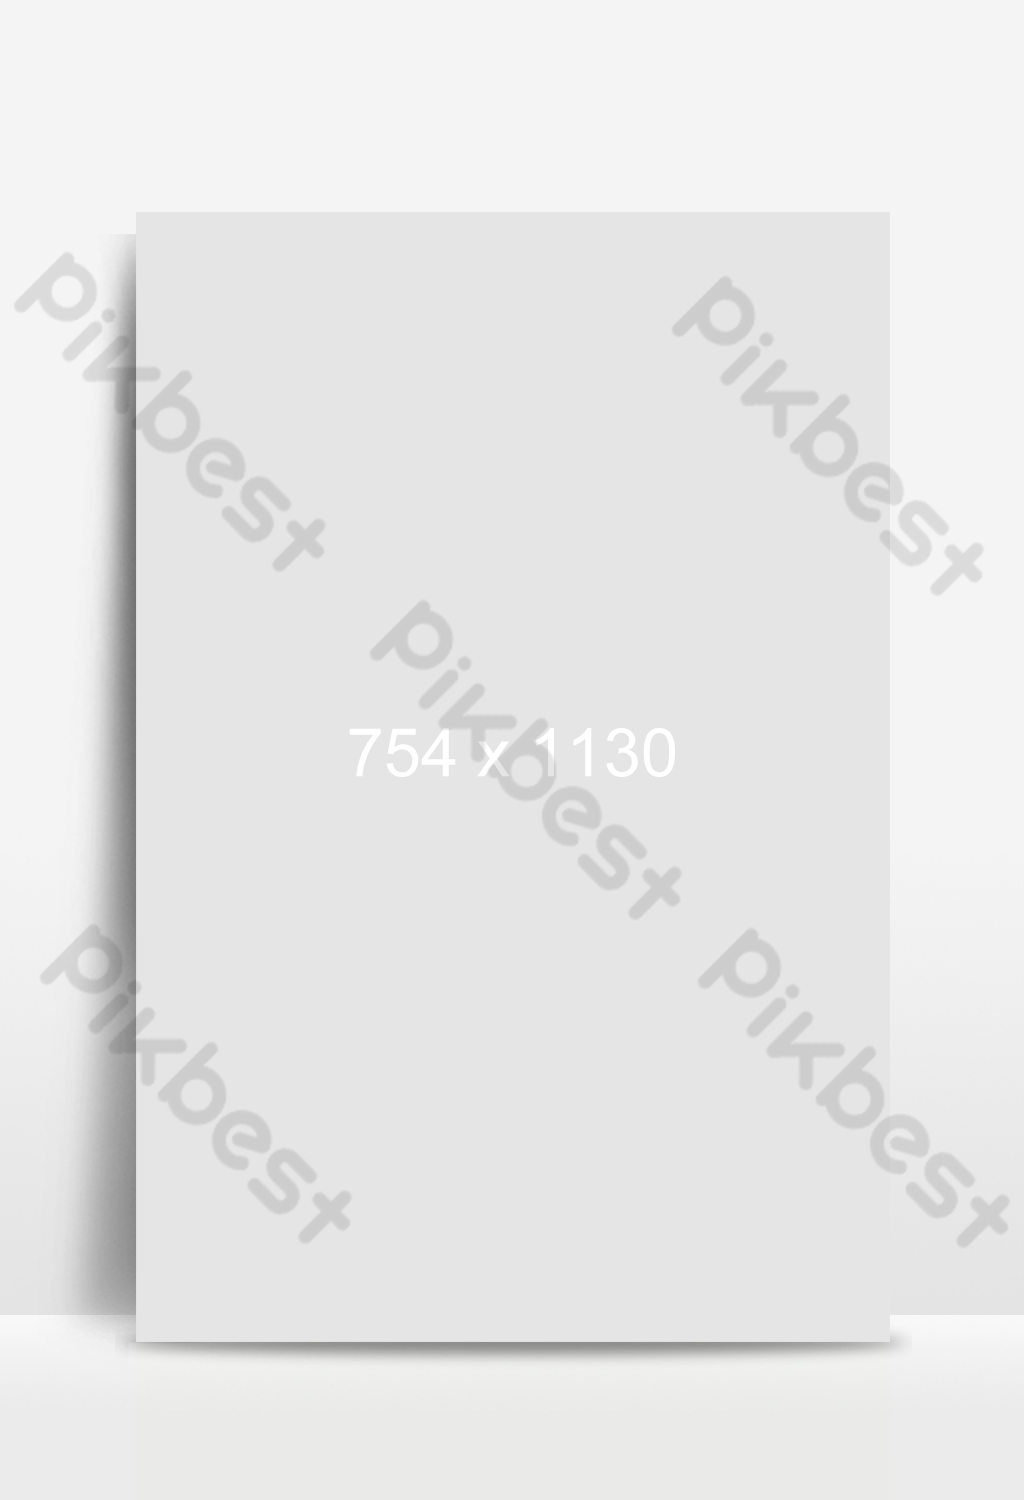 Small Fresh Petal Skin Care Background Poster Backgrounds Psd Free Download Pikbest